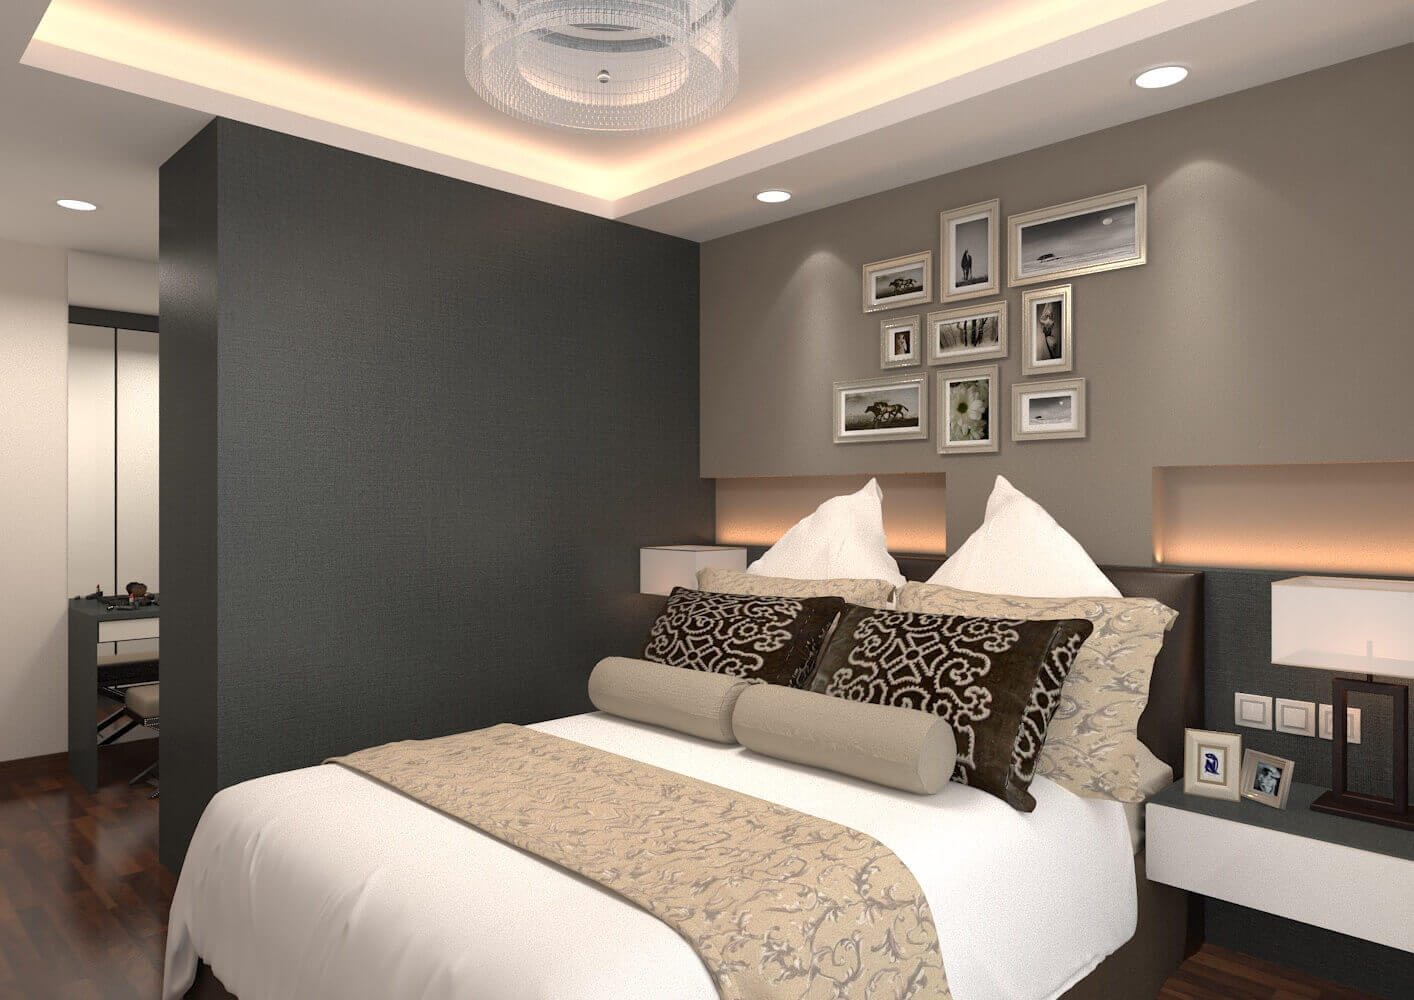 3 room hdb laurus design pte ltd for Main bedroom designs pictures